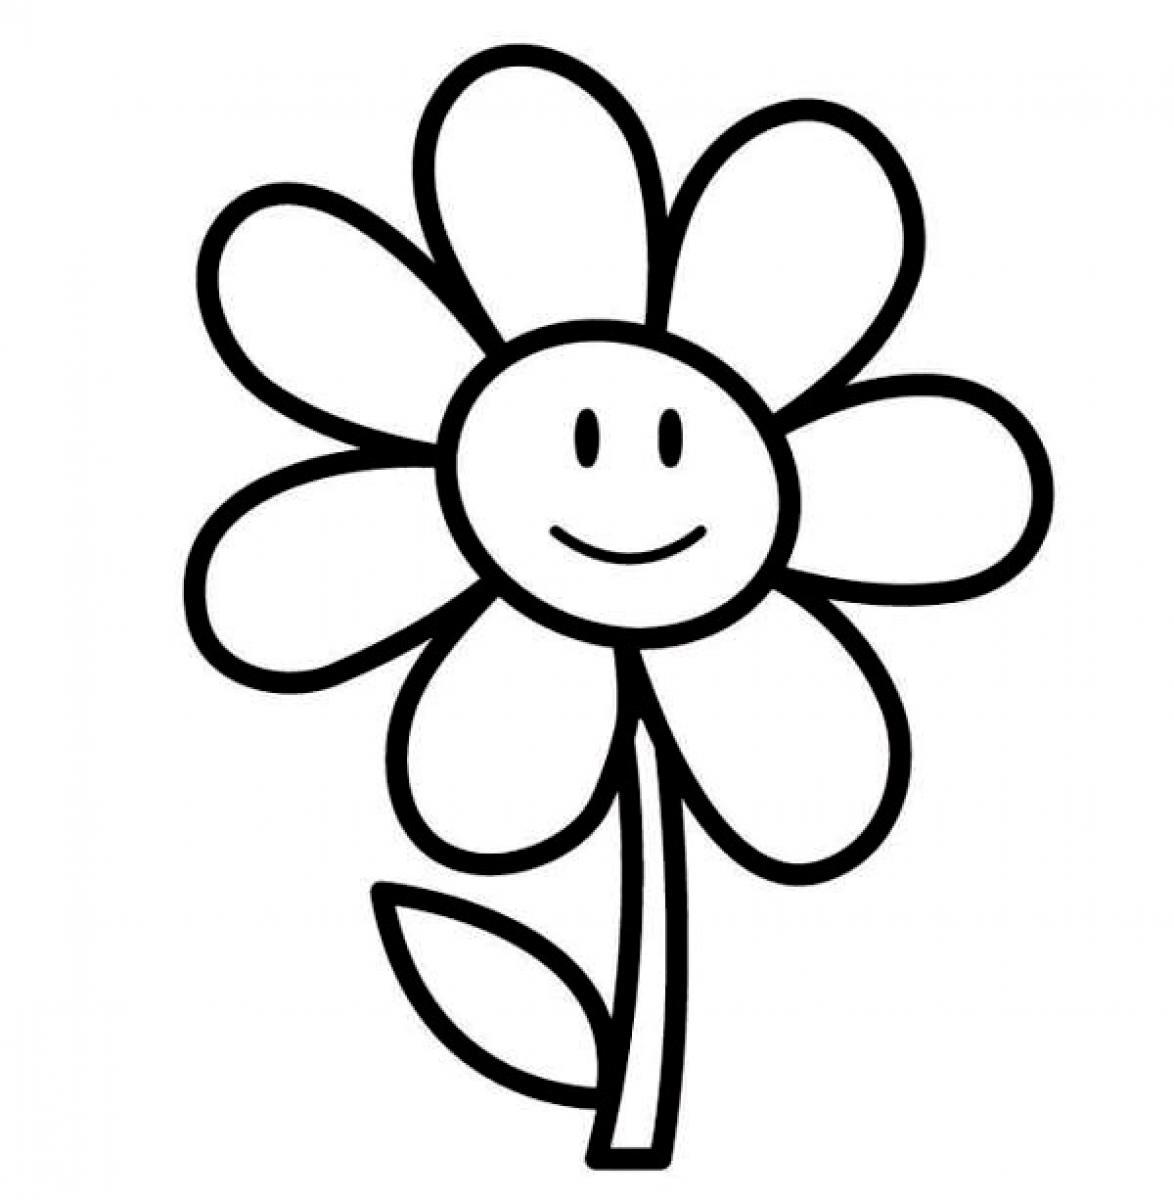 Easy Kids Drawing at GetDrawings.com | Free for personal use Easy ...